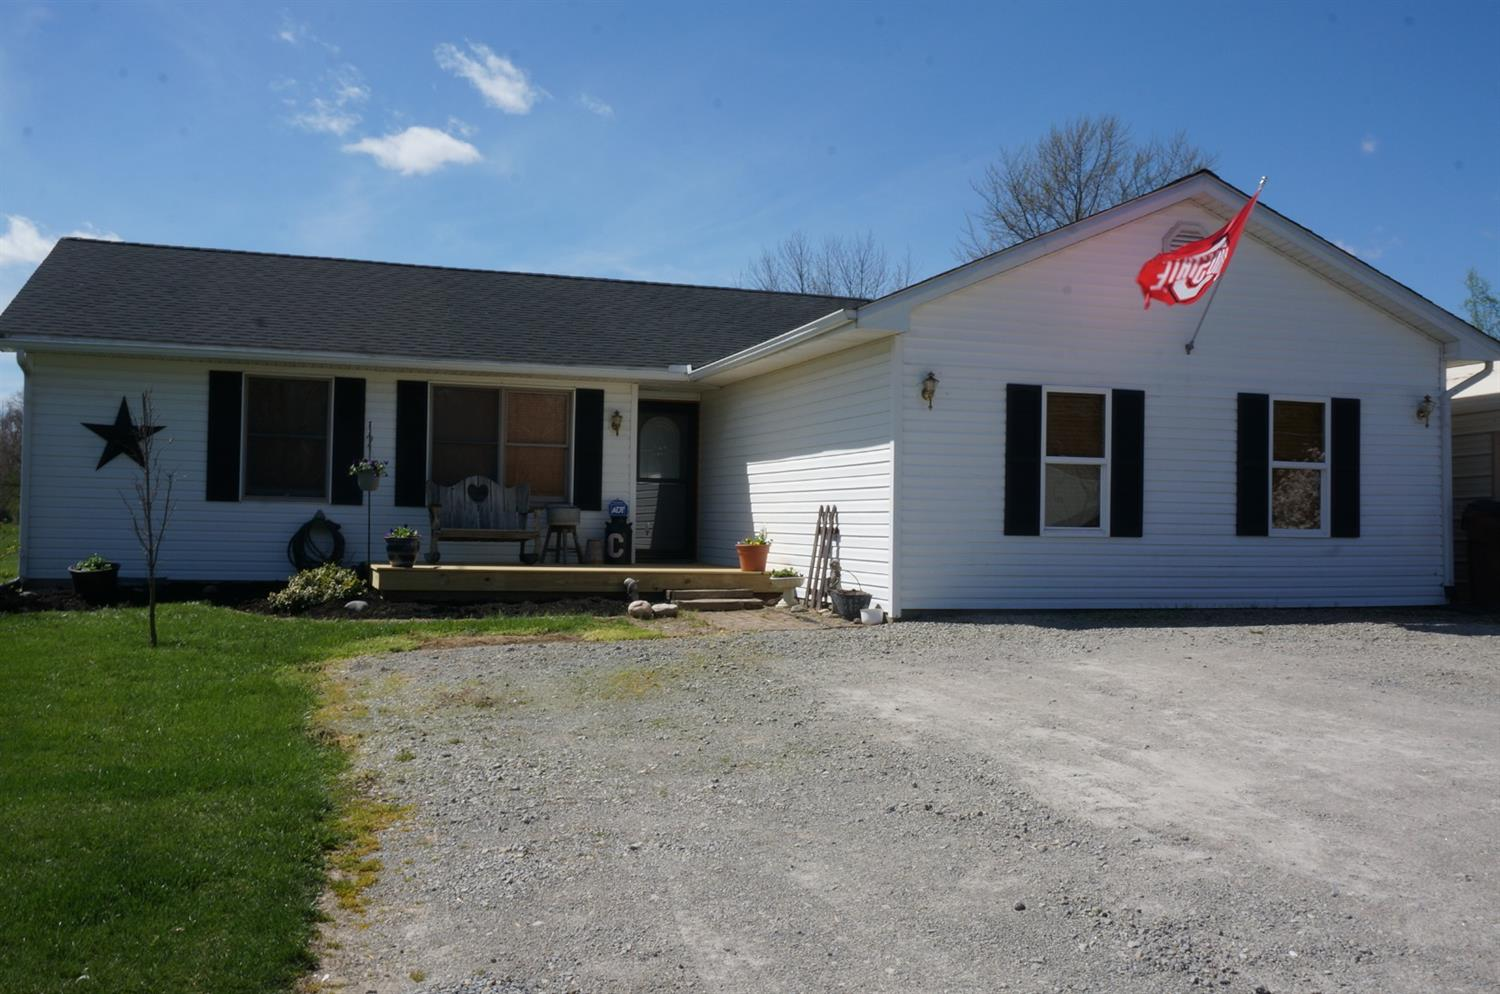 Property for sale at 7700 N Sr 123, Blanchester,  Ohio 45107